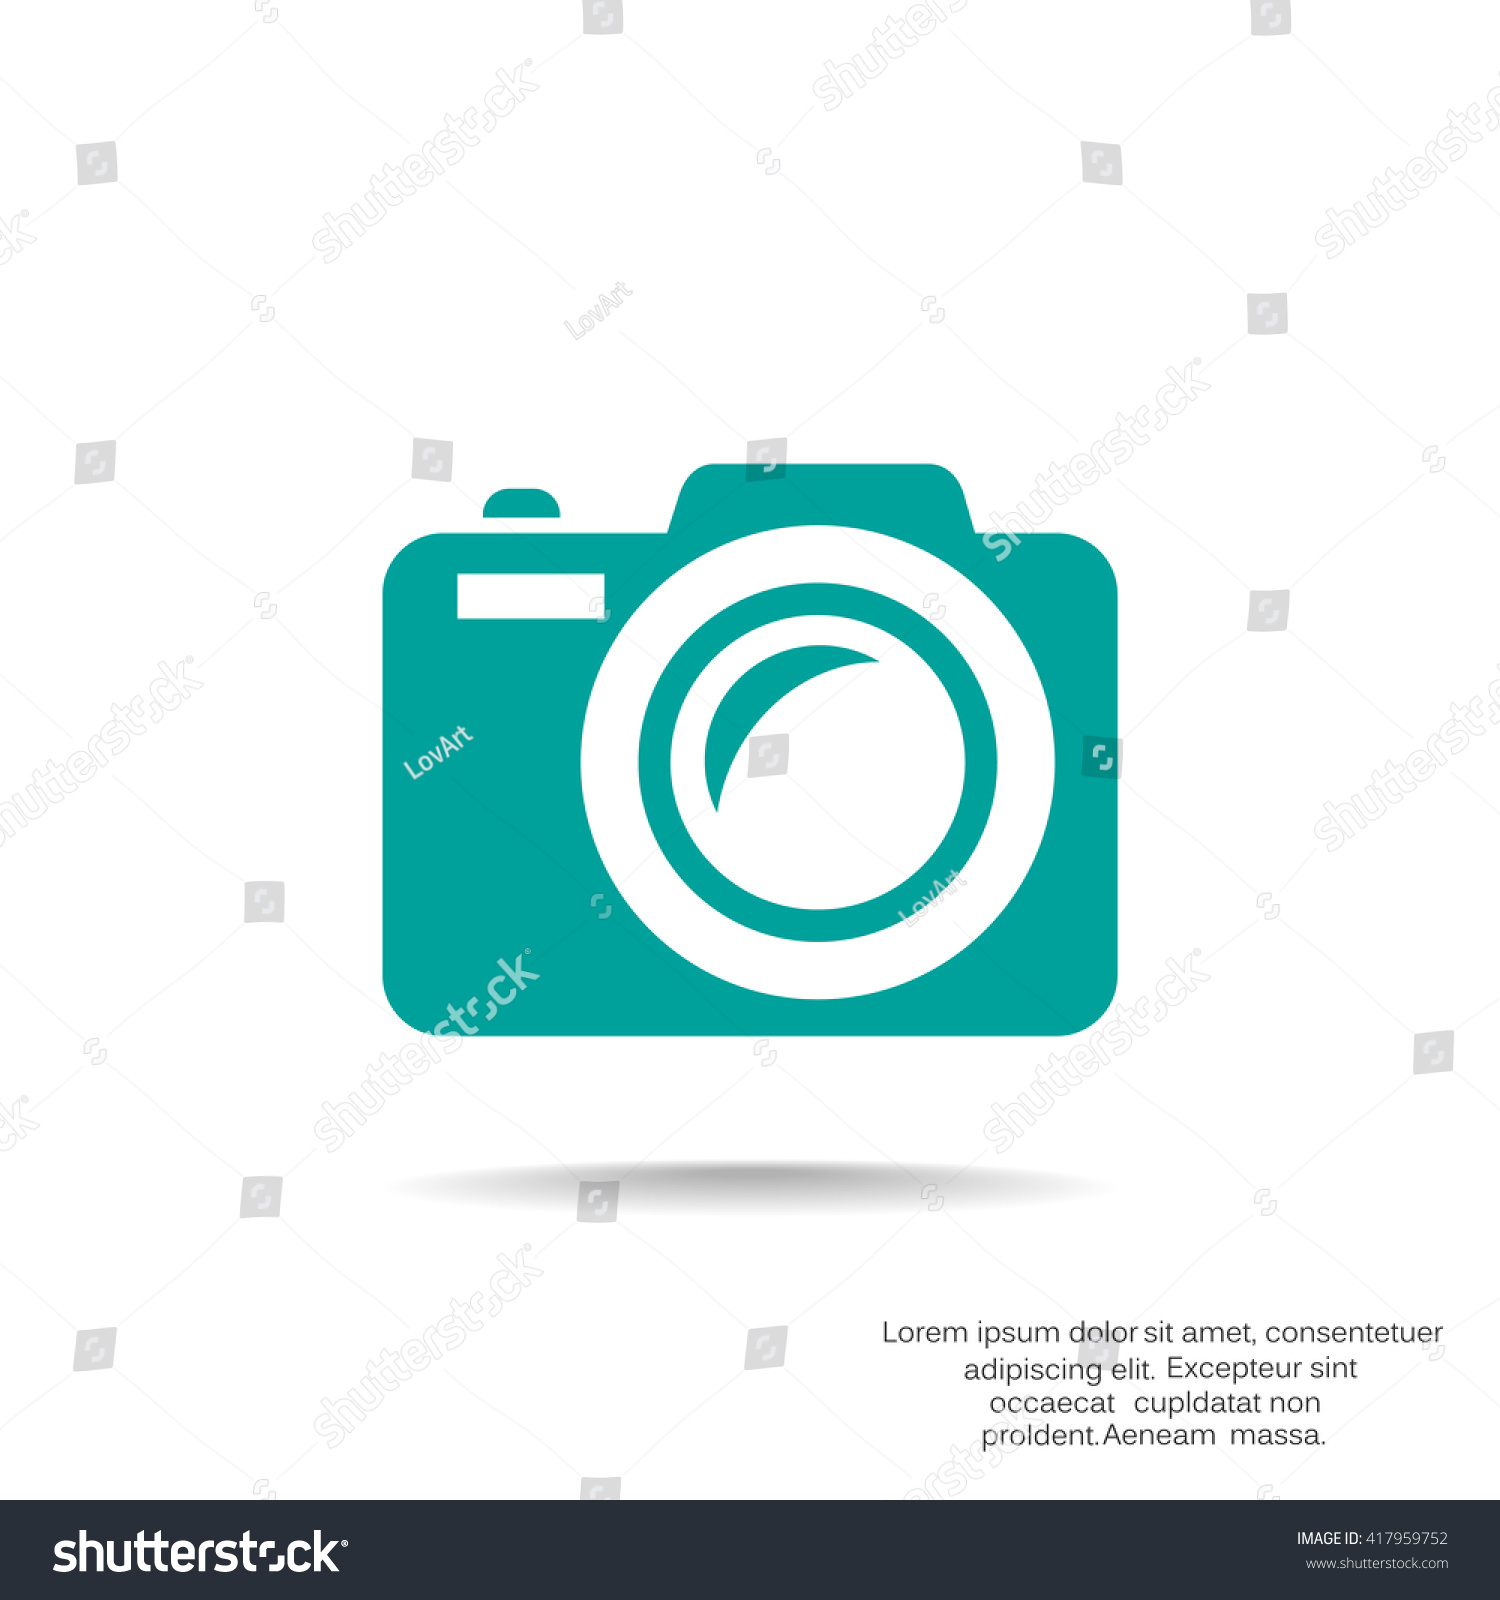 photo camera icon photo camera icon Vector photo camera icon Art photo camera icon eps photo camera icon Image photo camera icon logo photo camera icon Sign photo camera icon Flat photo camera